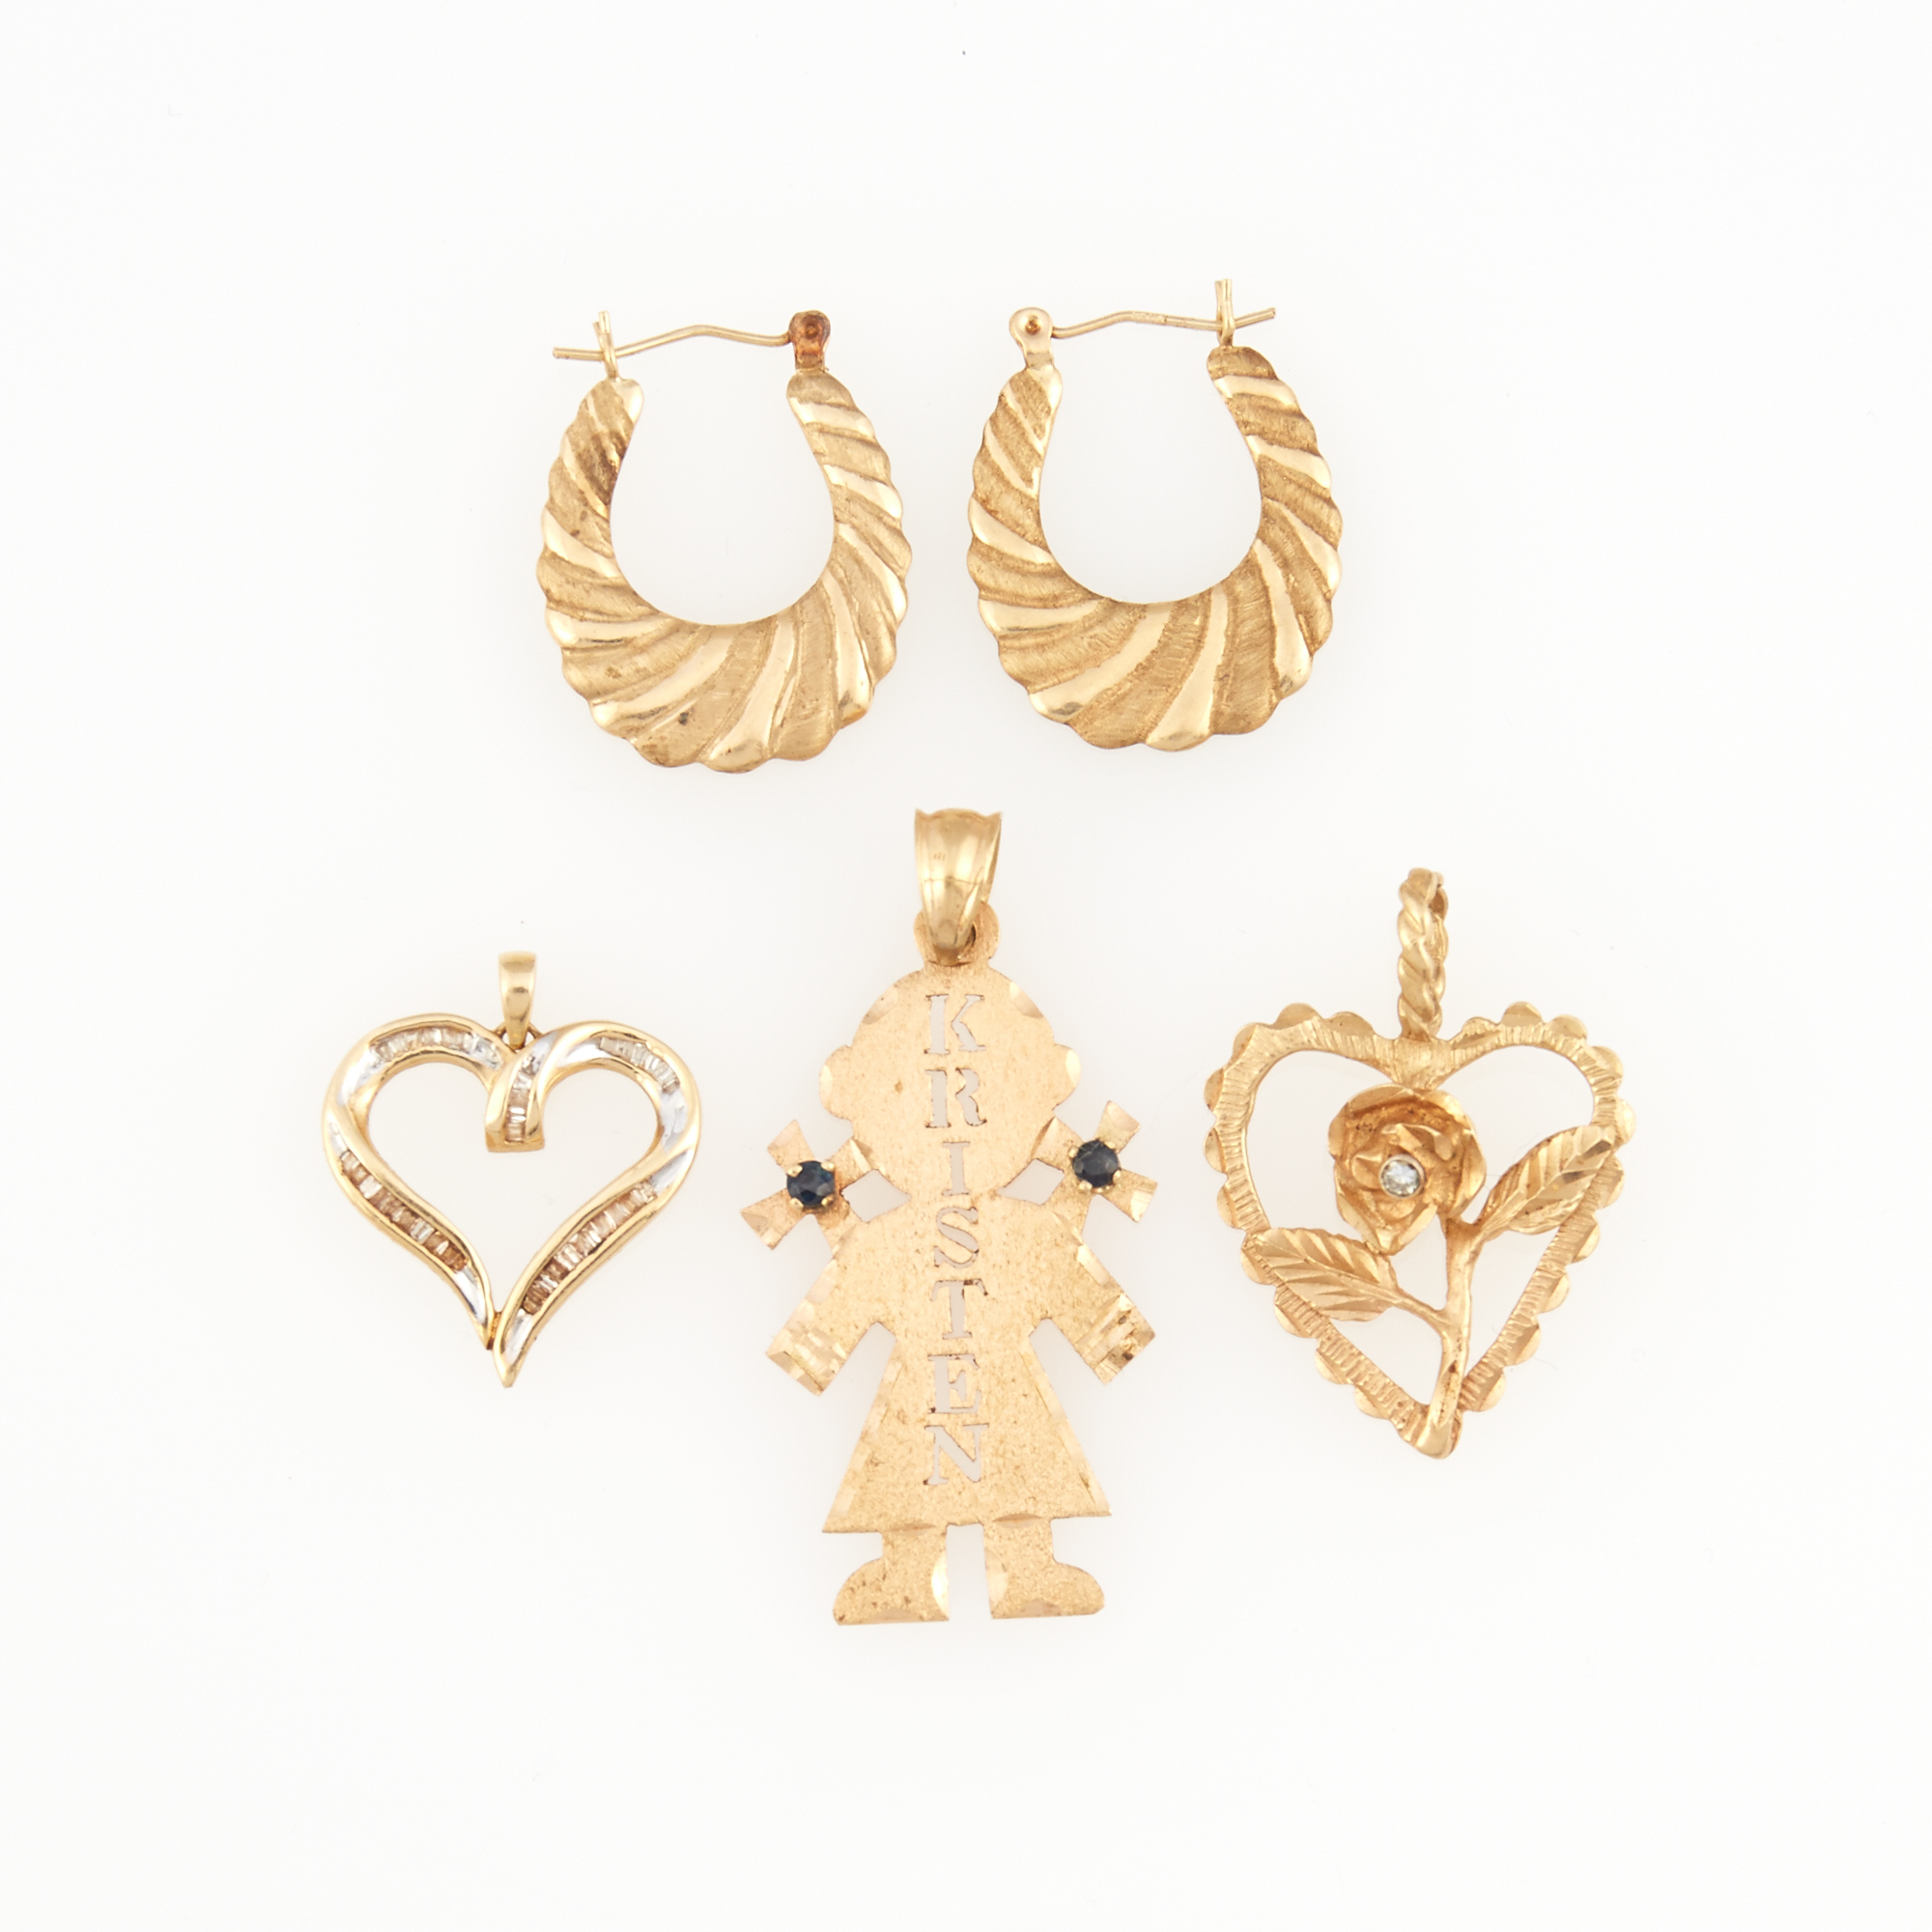 Lot image - Two Diamond Pendants, Gold and Stone Pendant and Two Earrings, 14K 5 dwt. all